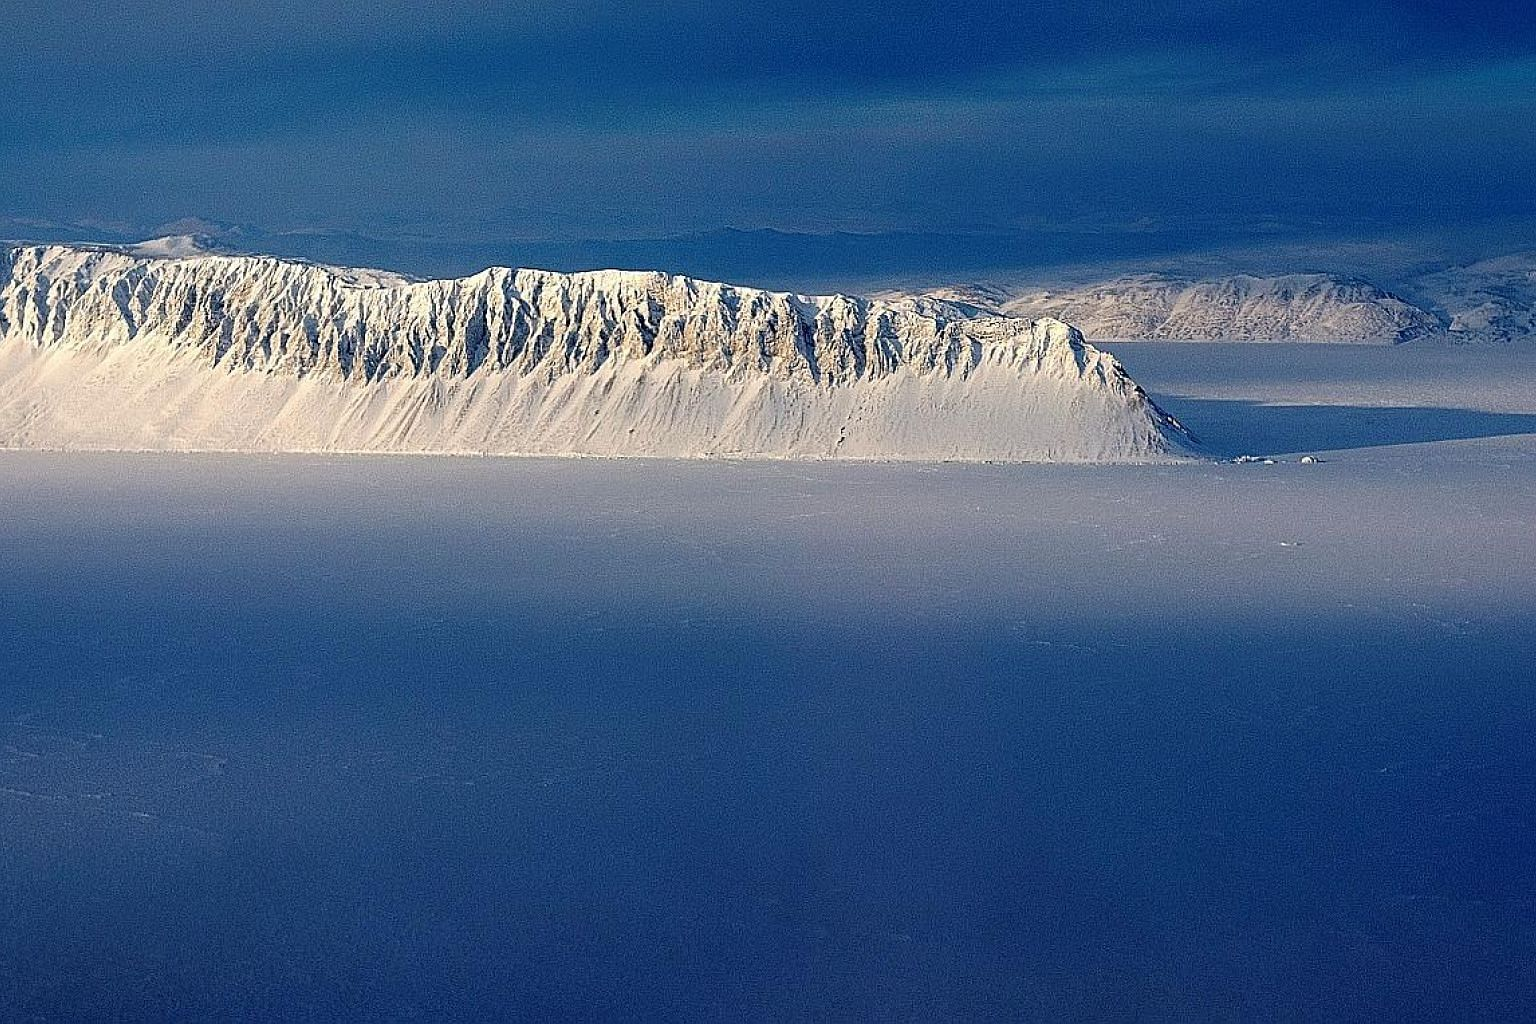 """Eureka Sound on Ellesmere Island as seen in a Nasa Operation IceBridge survey picture taken on March 25, 2014. The Milne Ice Shelf, at the fringe of Ellesmere Island, has collapsed. """"Above-normal air temperatures, offshore winds and open water in fro"""